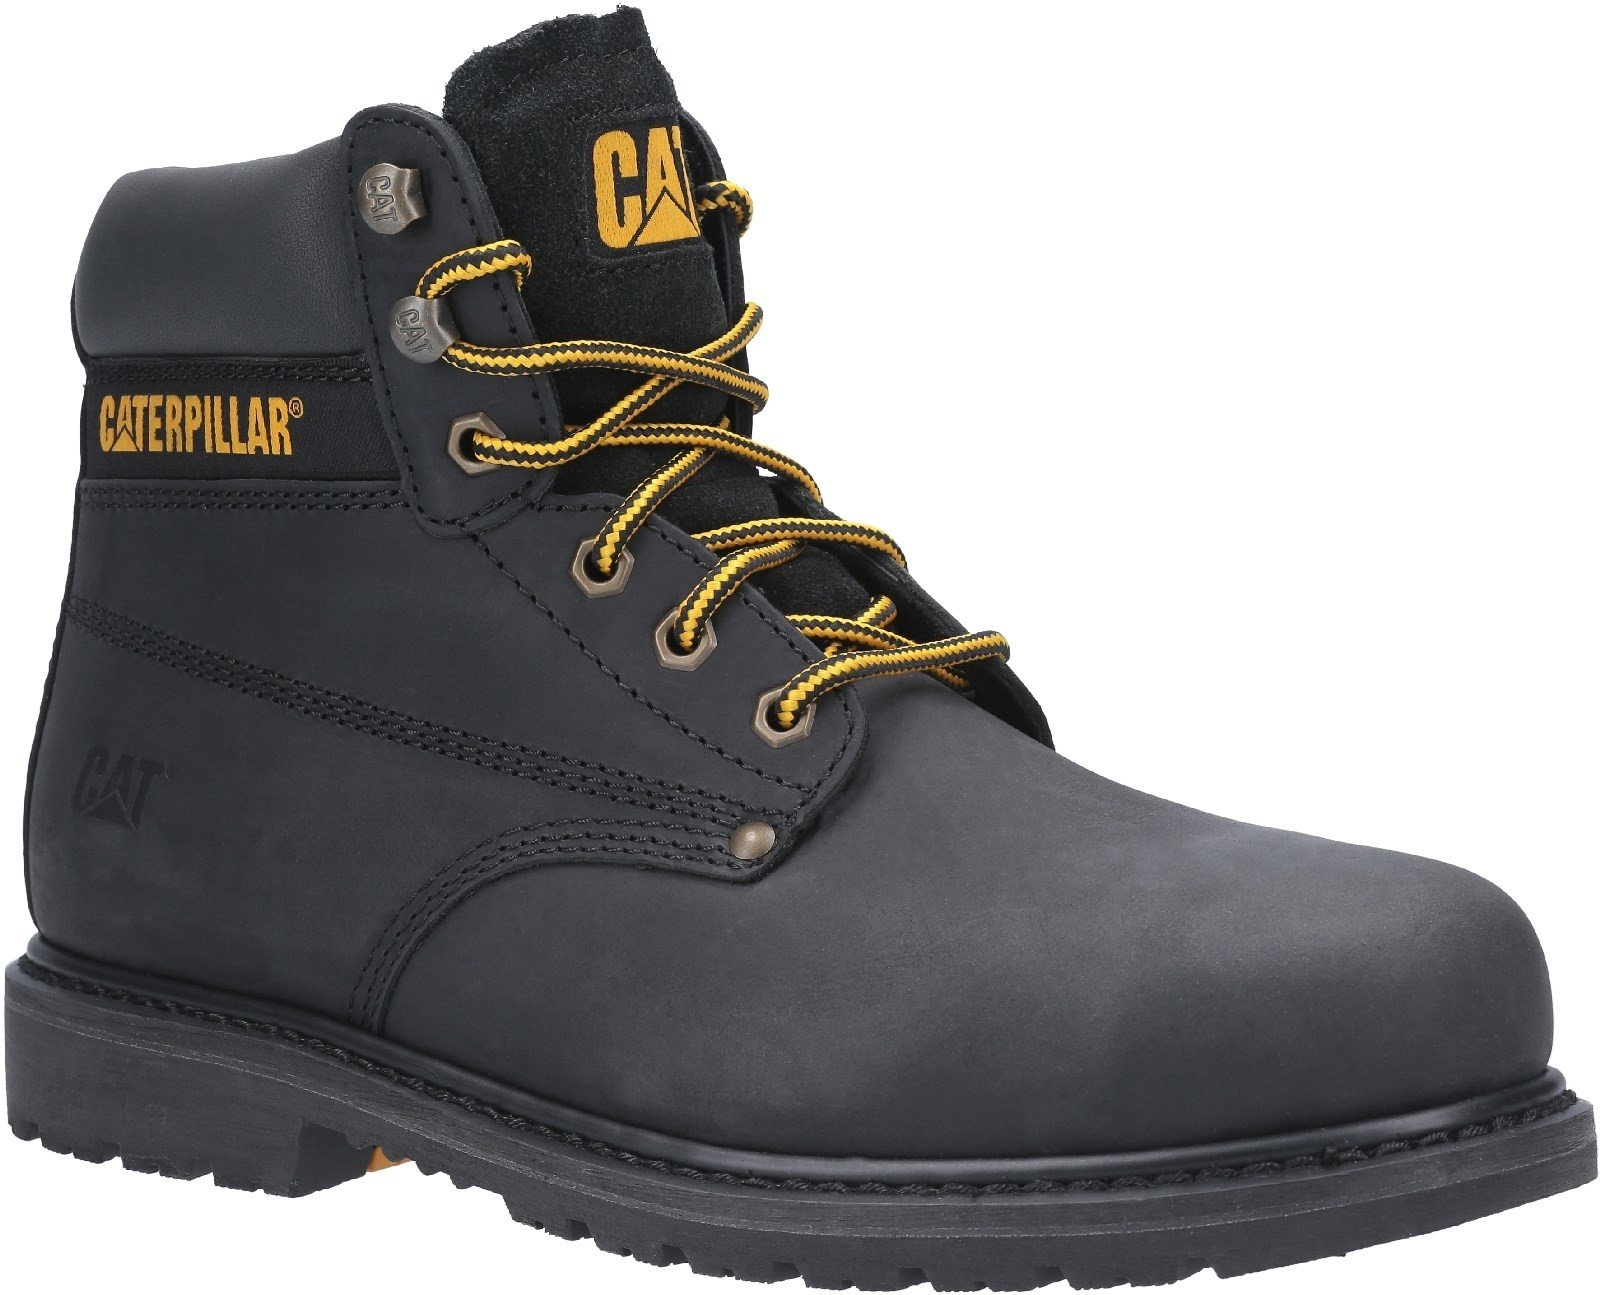 Caterpillar Men's Powerplant GYW Safety Boot Various Colours 30178 - Black 6